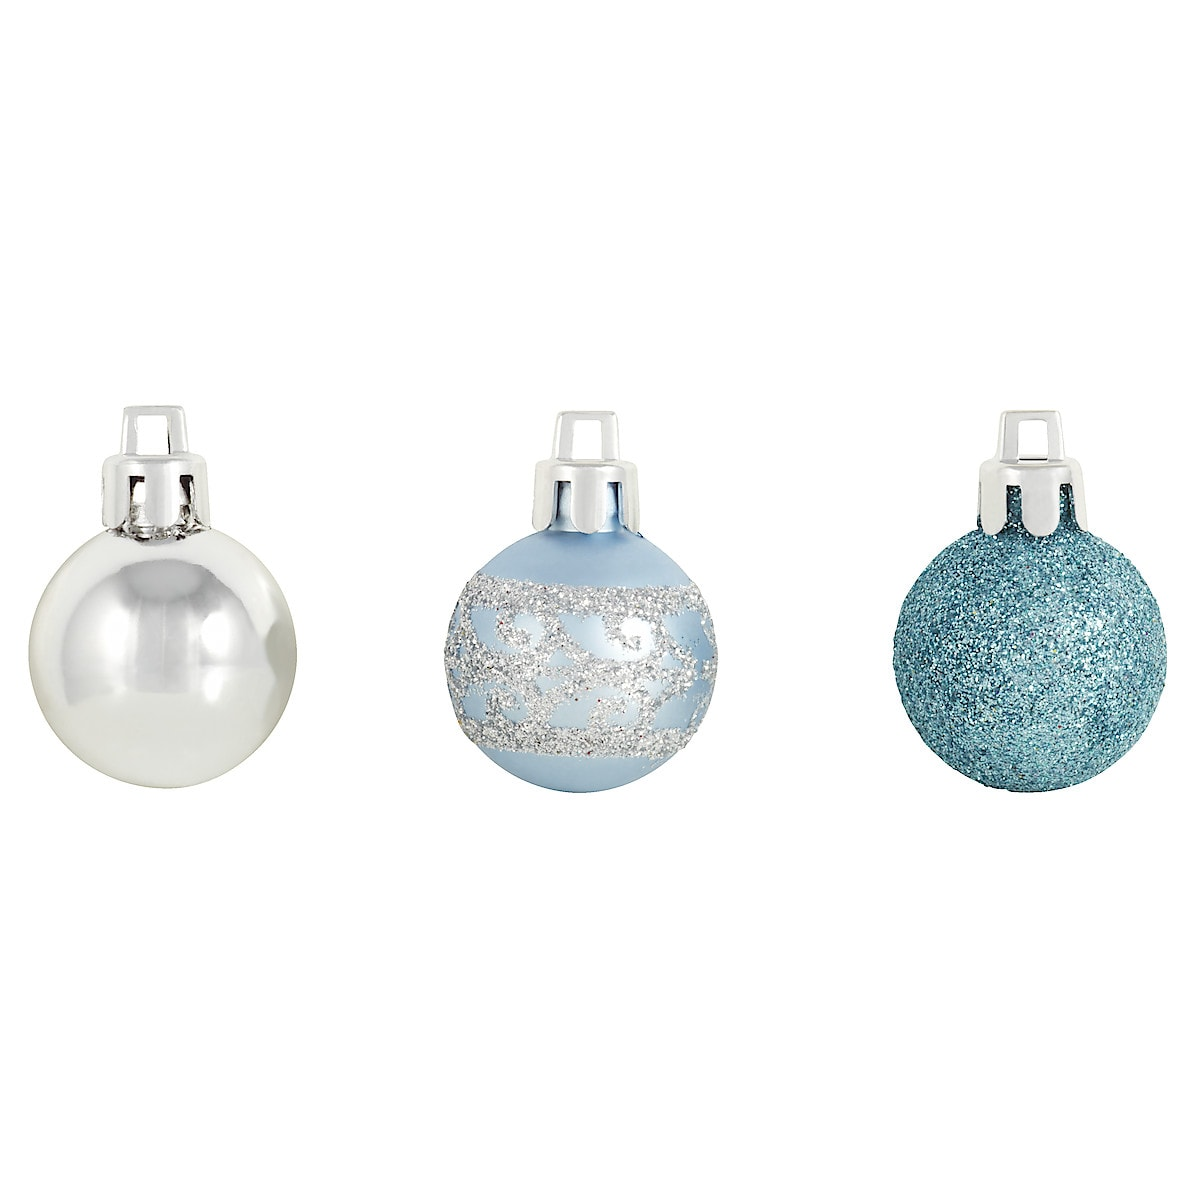 Trend christmas baubles